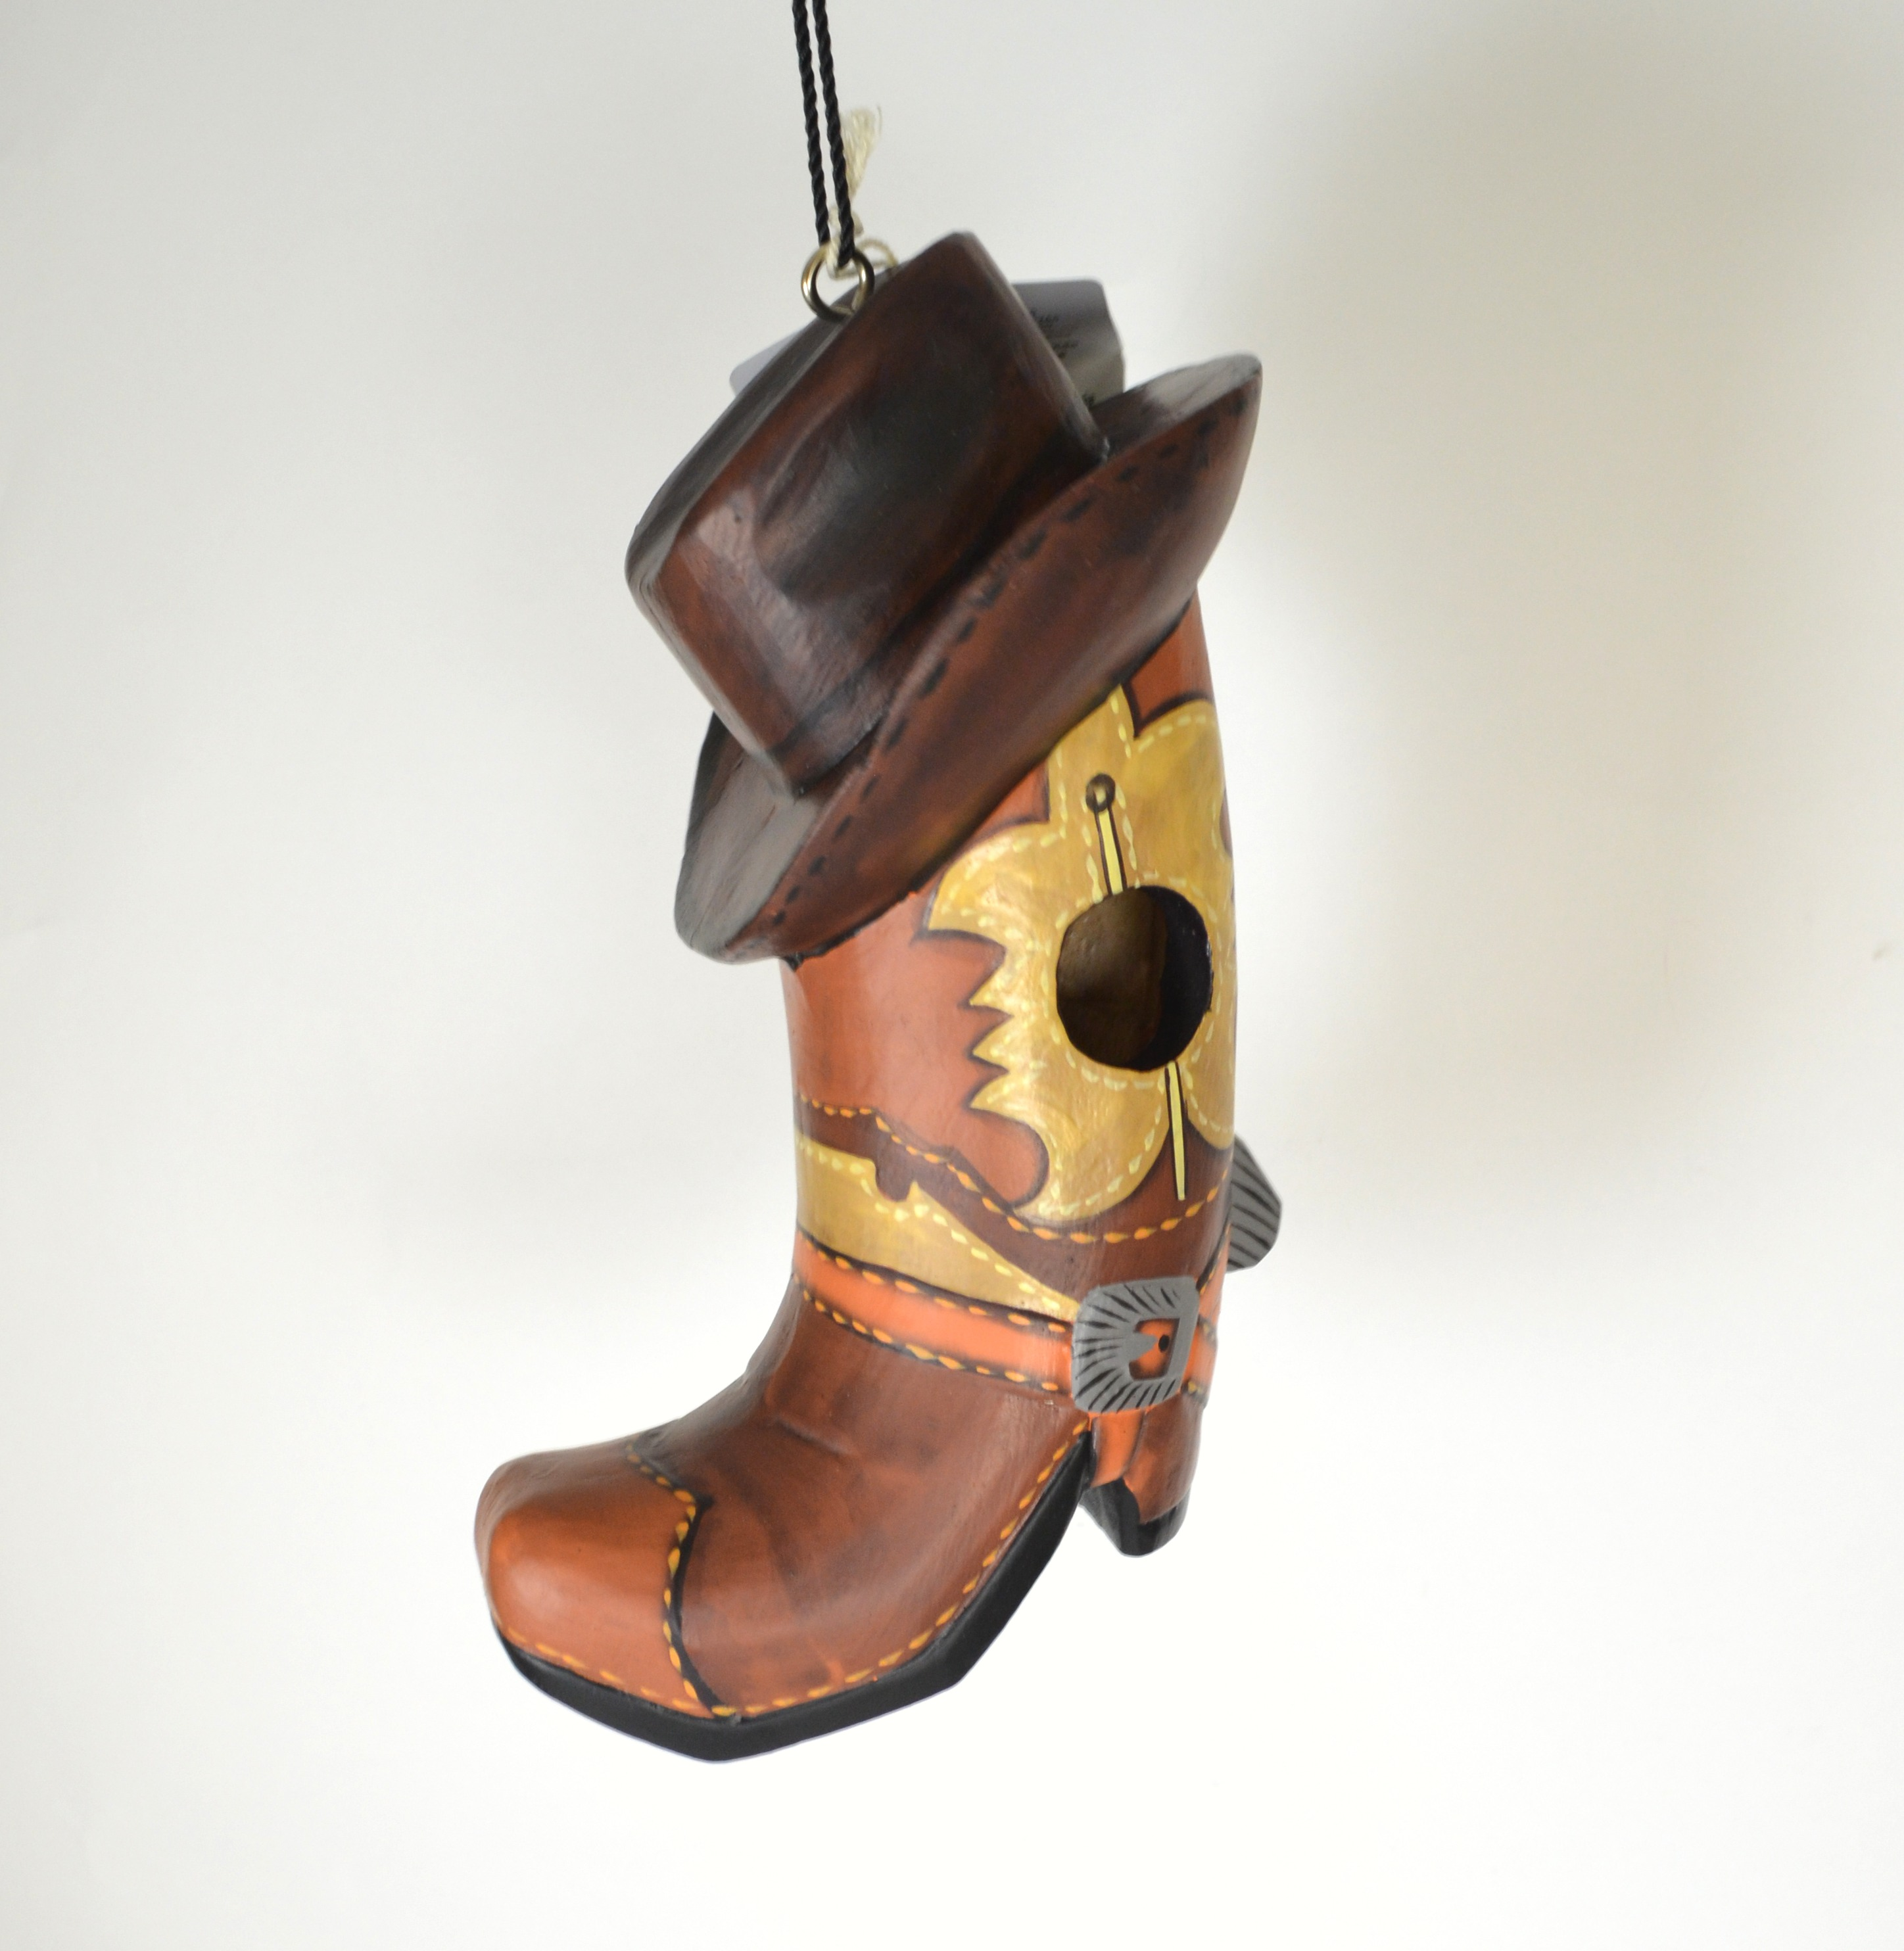 Cowboy Boot w/Hat Birdhouse